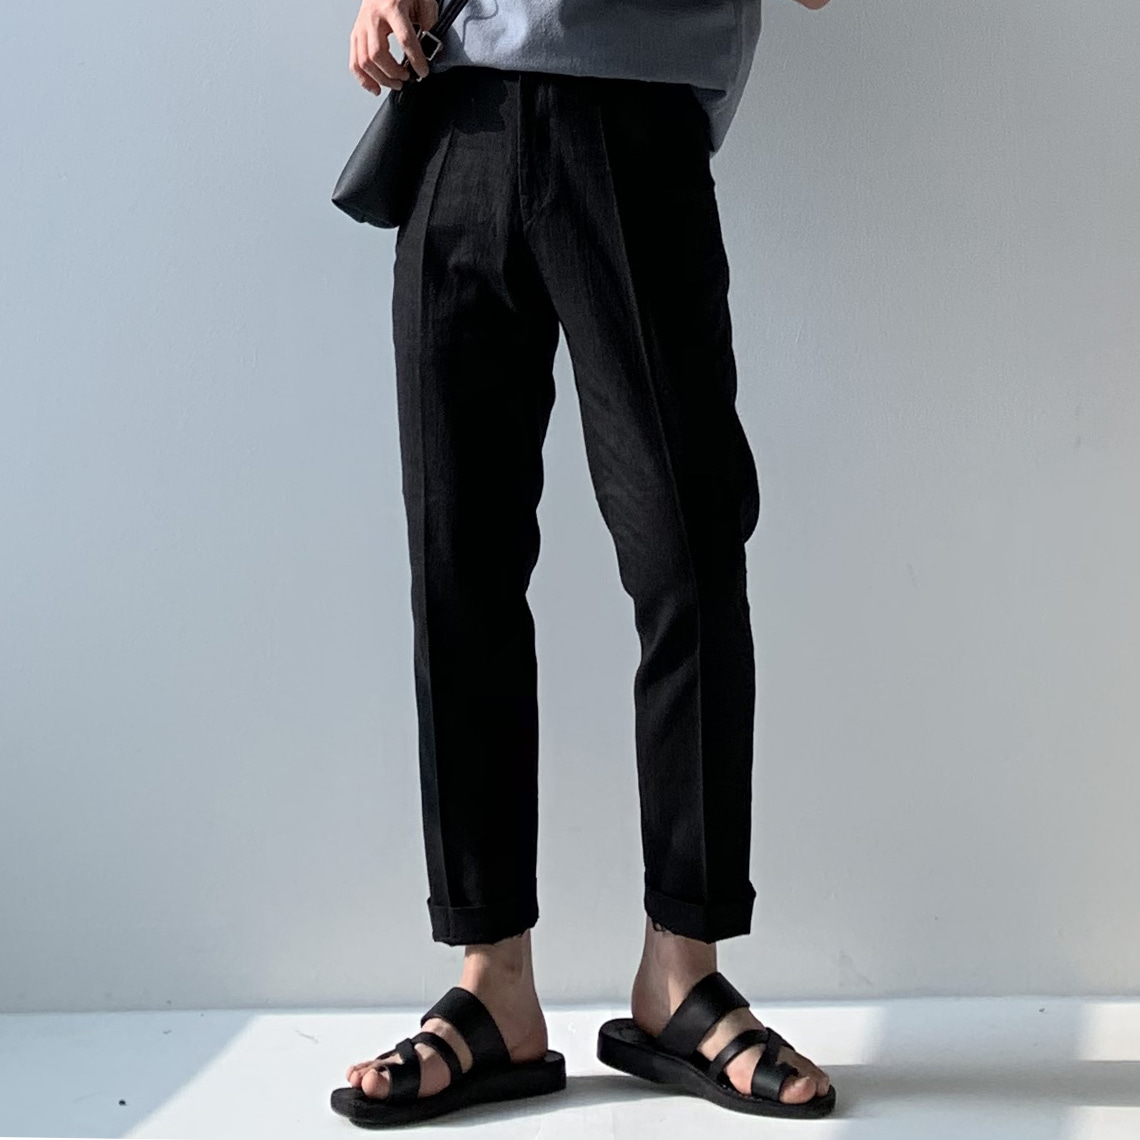 Drop-fit linen black slacks (벨트포함)